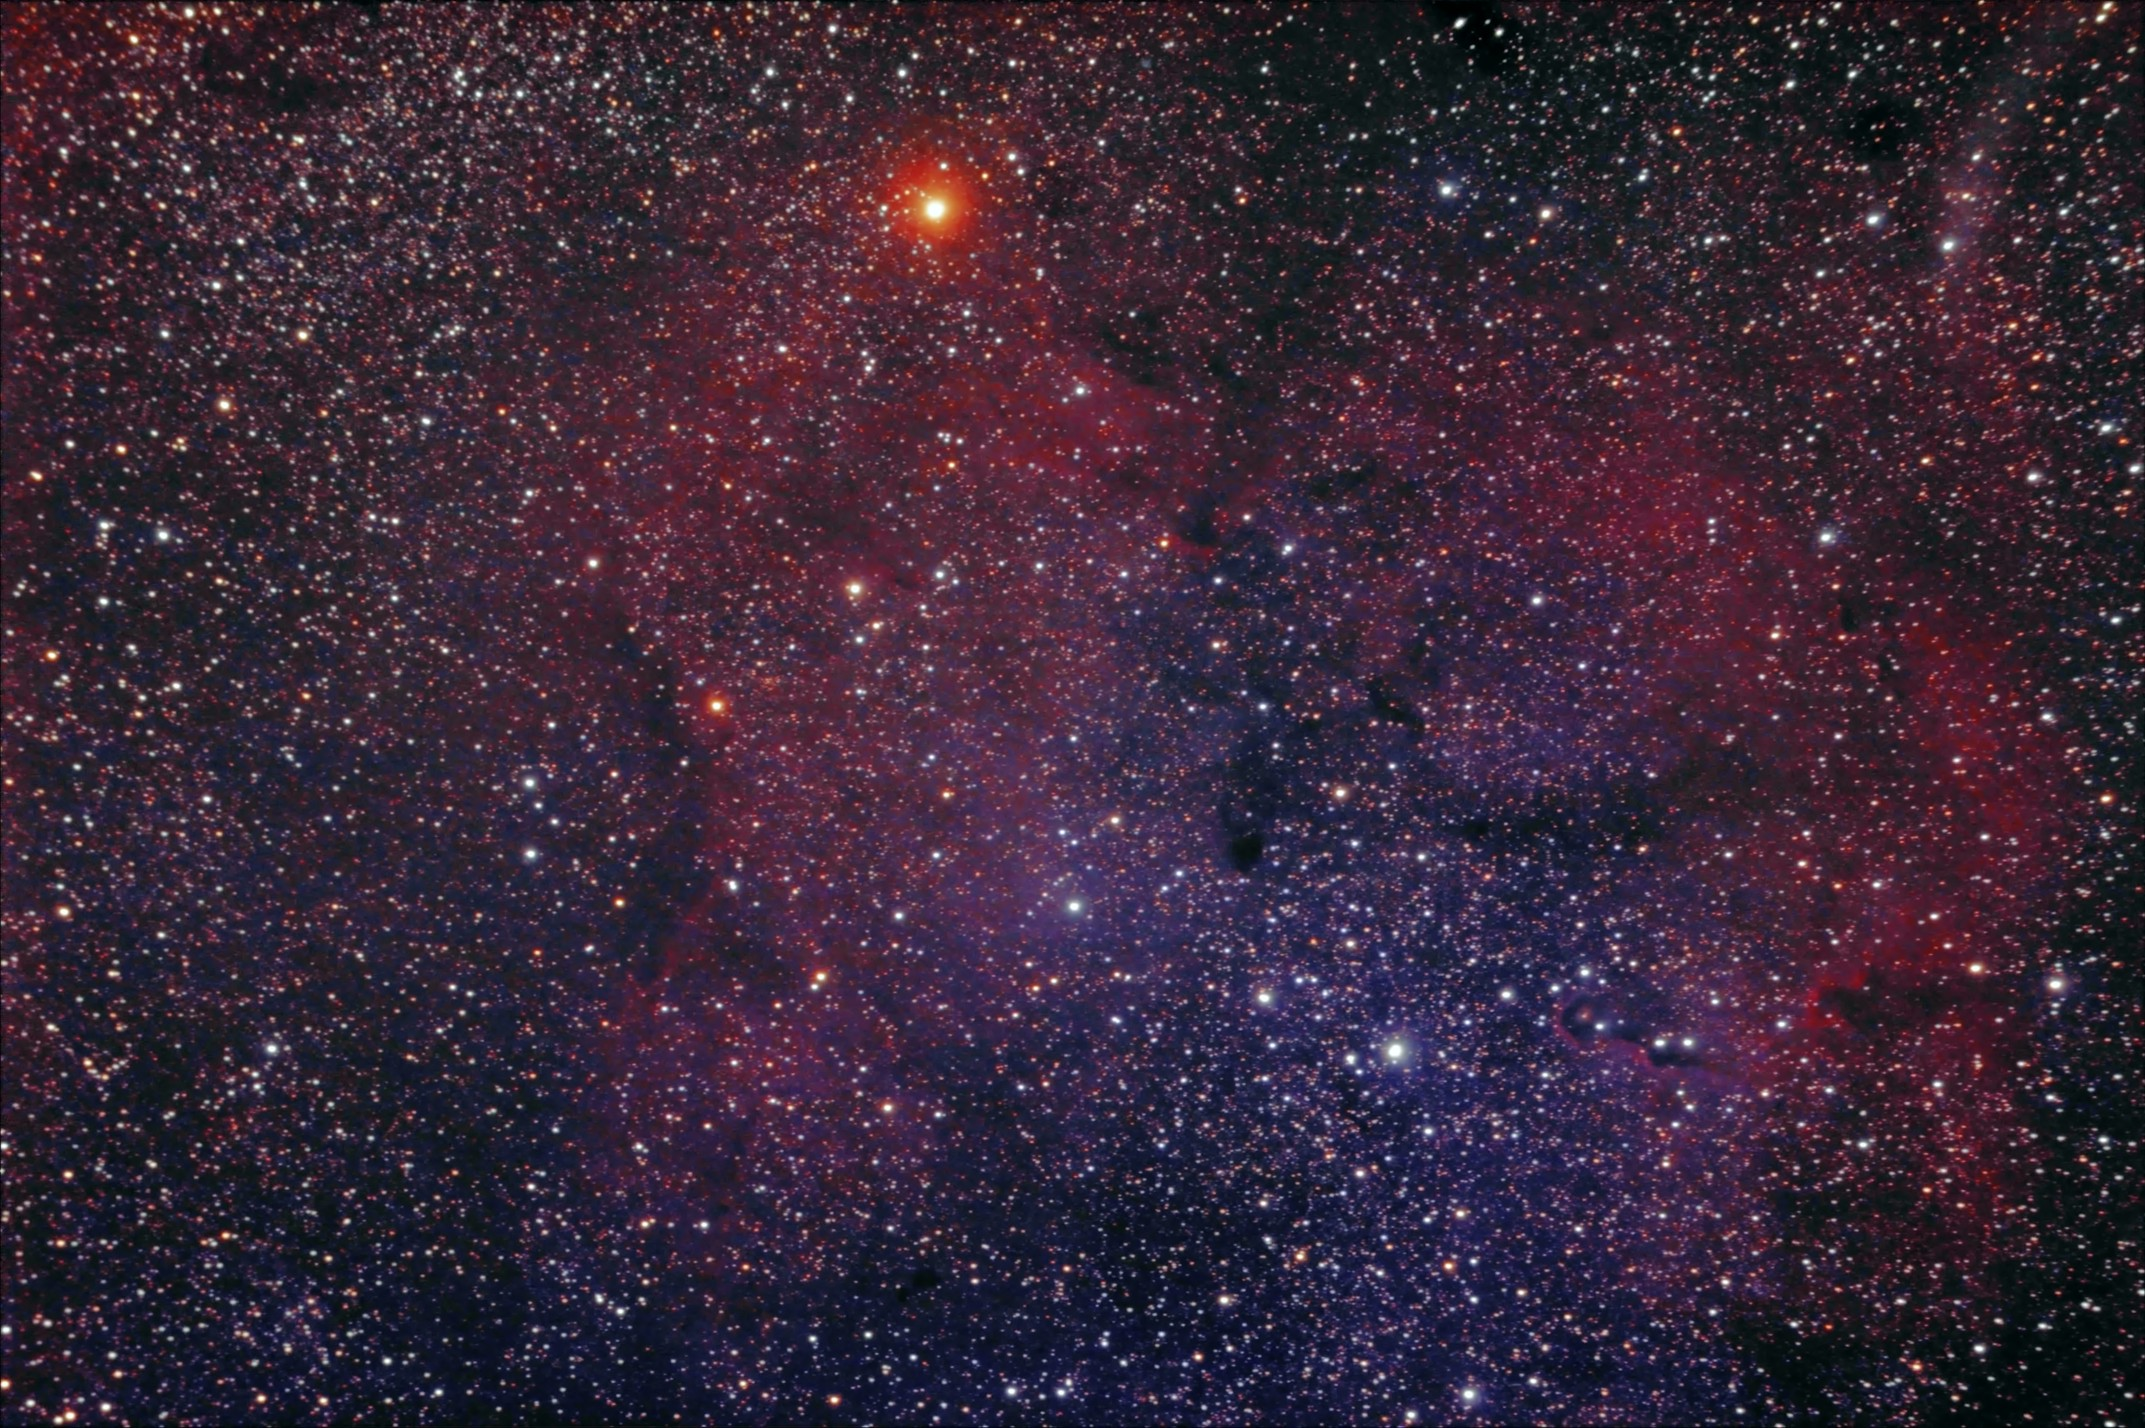 The Garnet Star and Elephant's Trunk Nebula